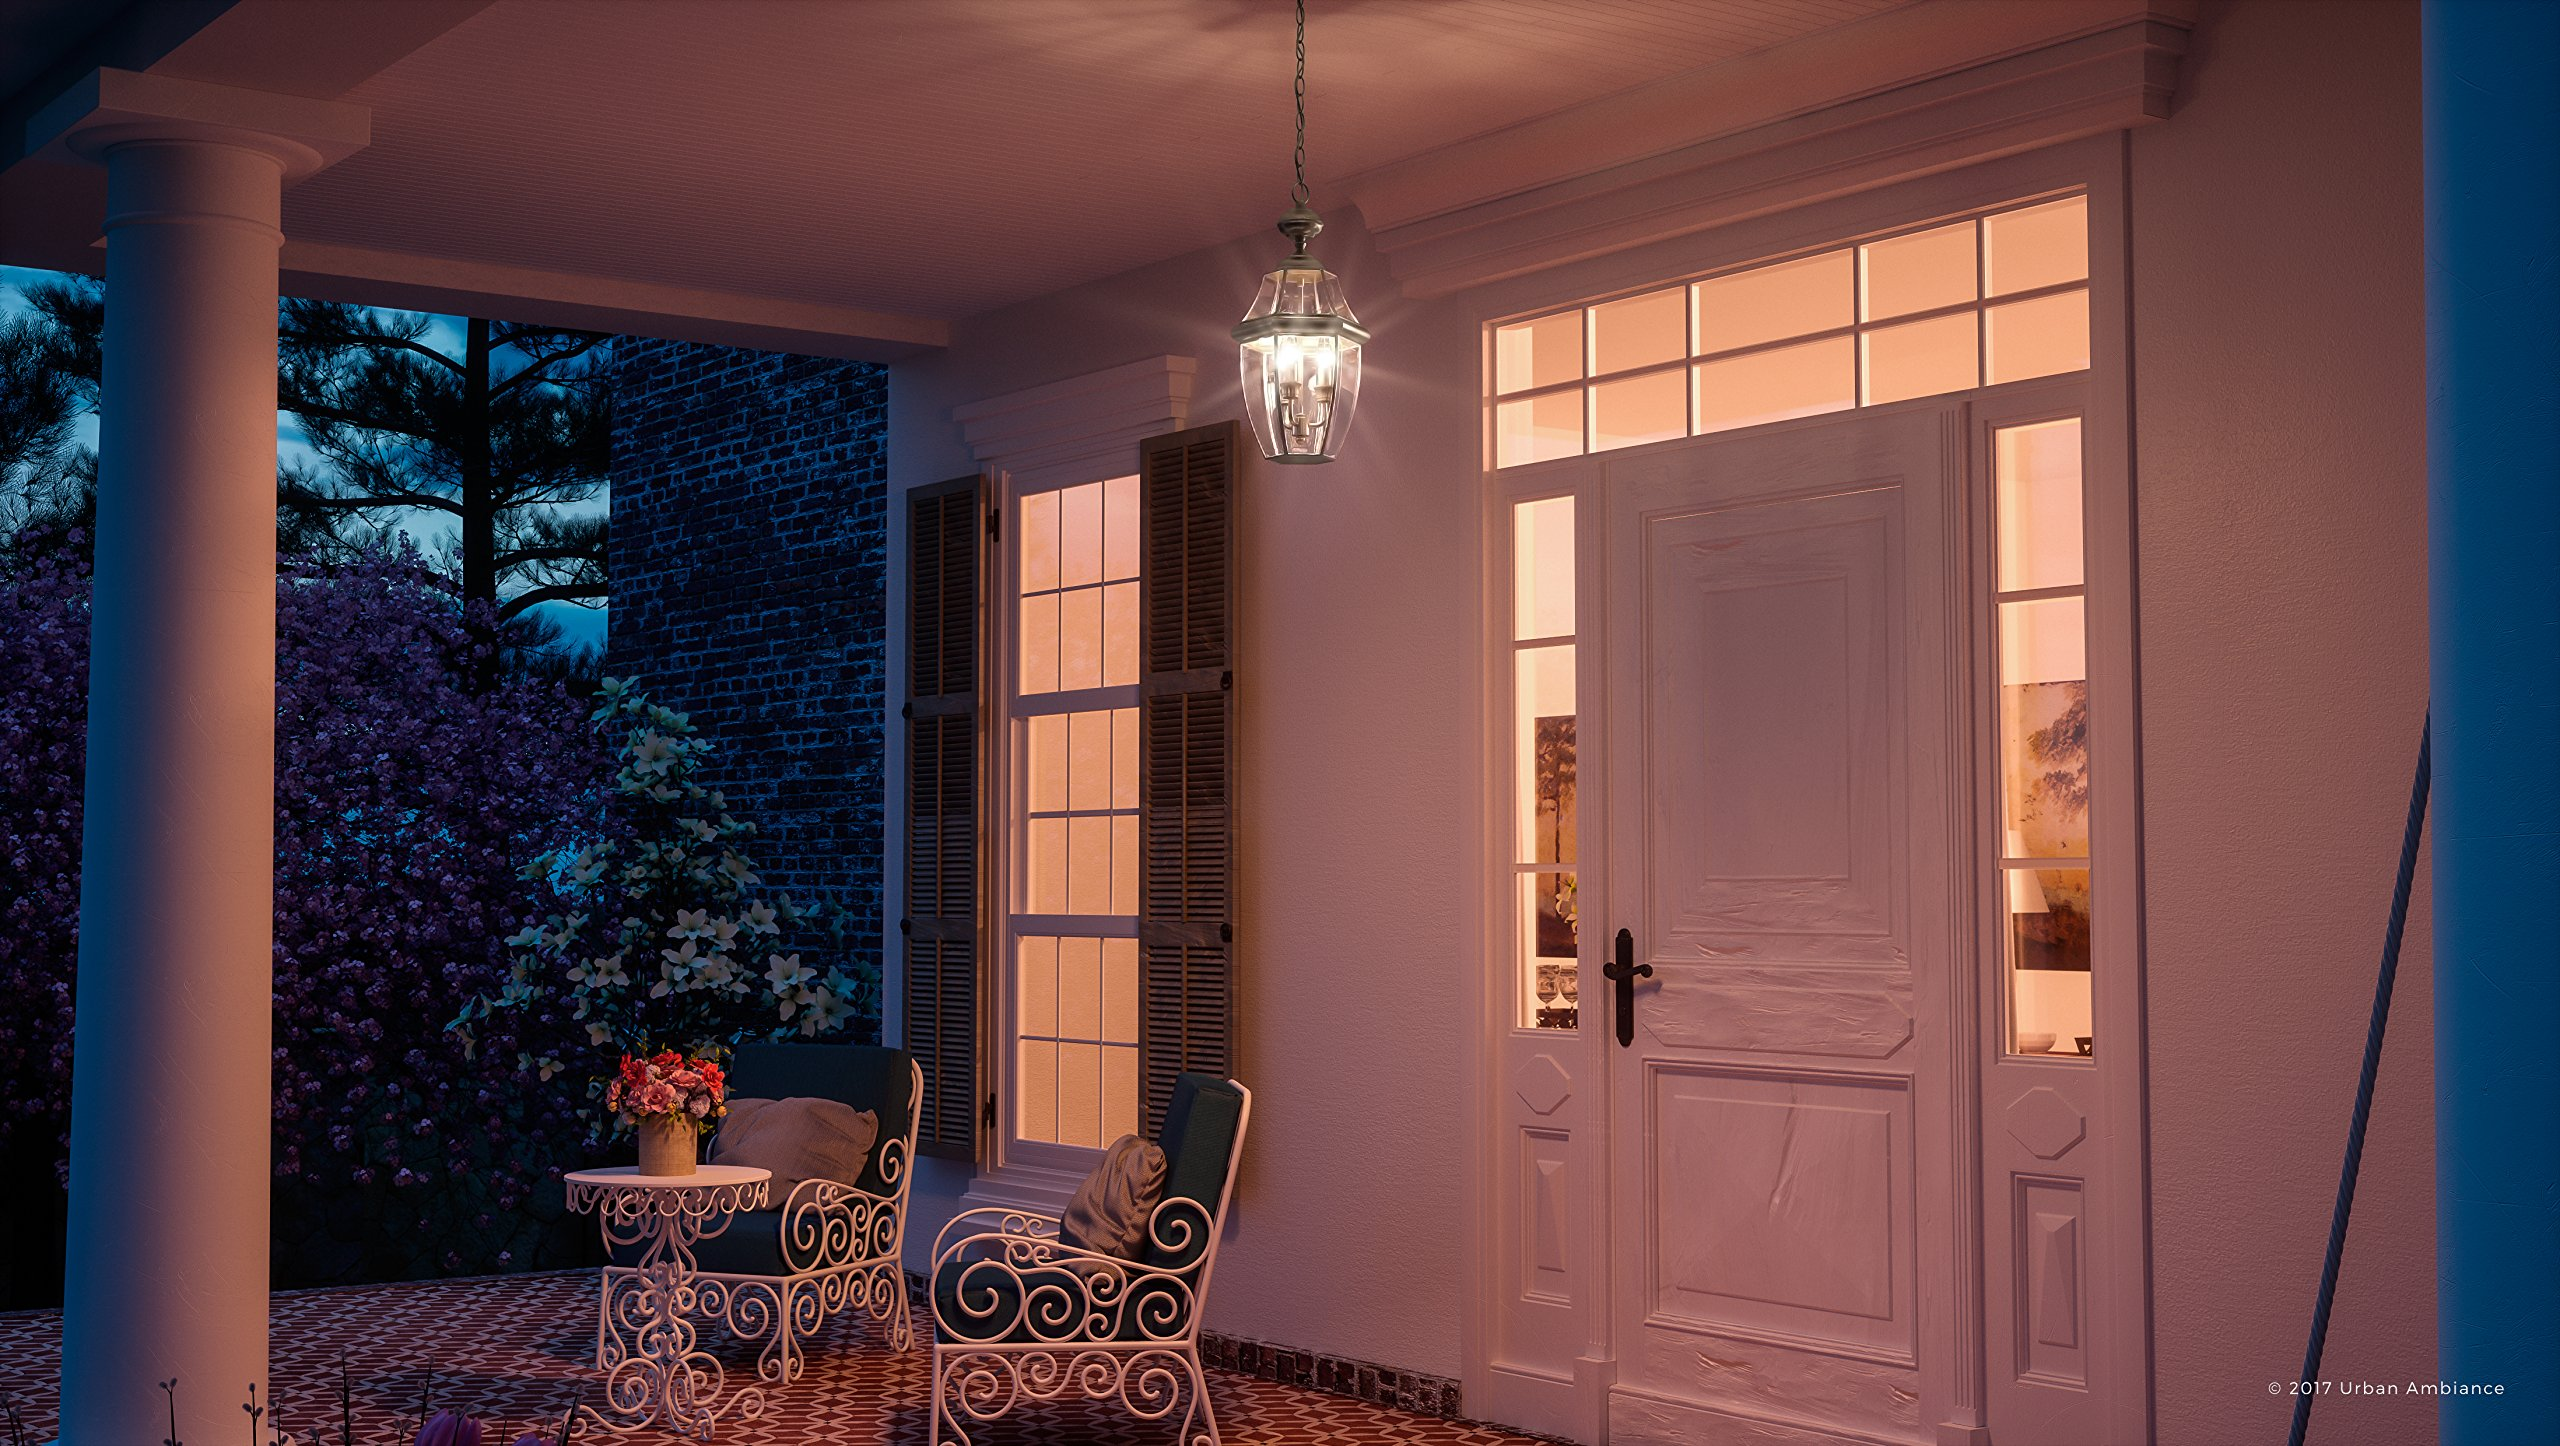 Luxury Colonial Outdoor Pendant Light, Large Size: 19''H x 11''W, with Tudor Style Elements, Versatile Design, Classy Aged Silver Finish and Beveled Glass, UQL1158 by Urban Ambiance by Urban Ambiance (Image #2)